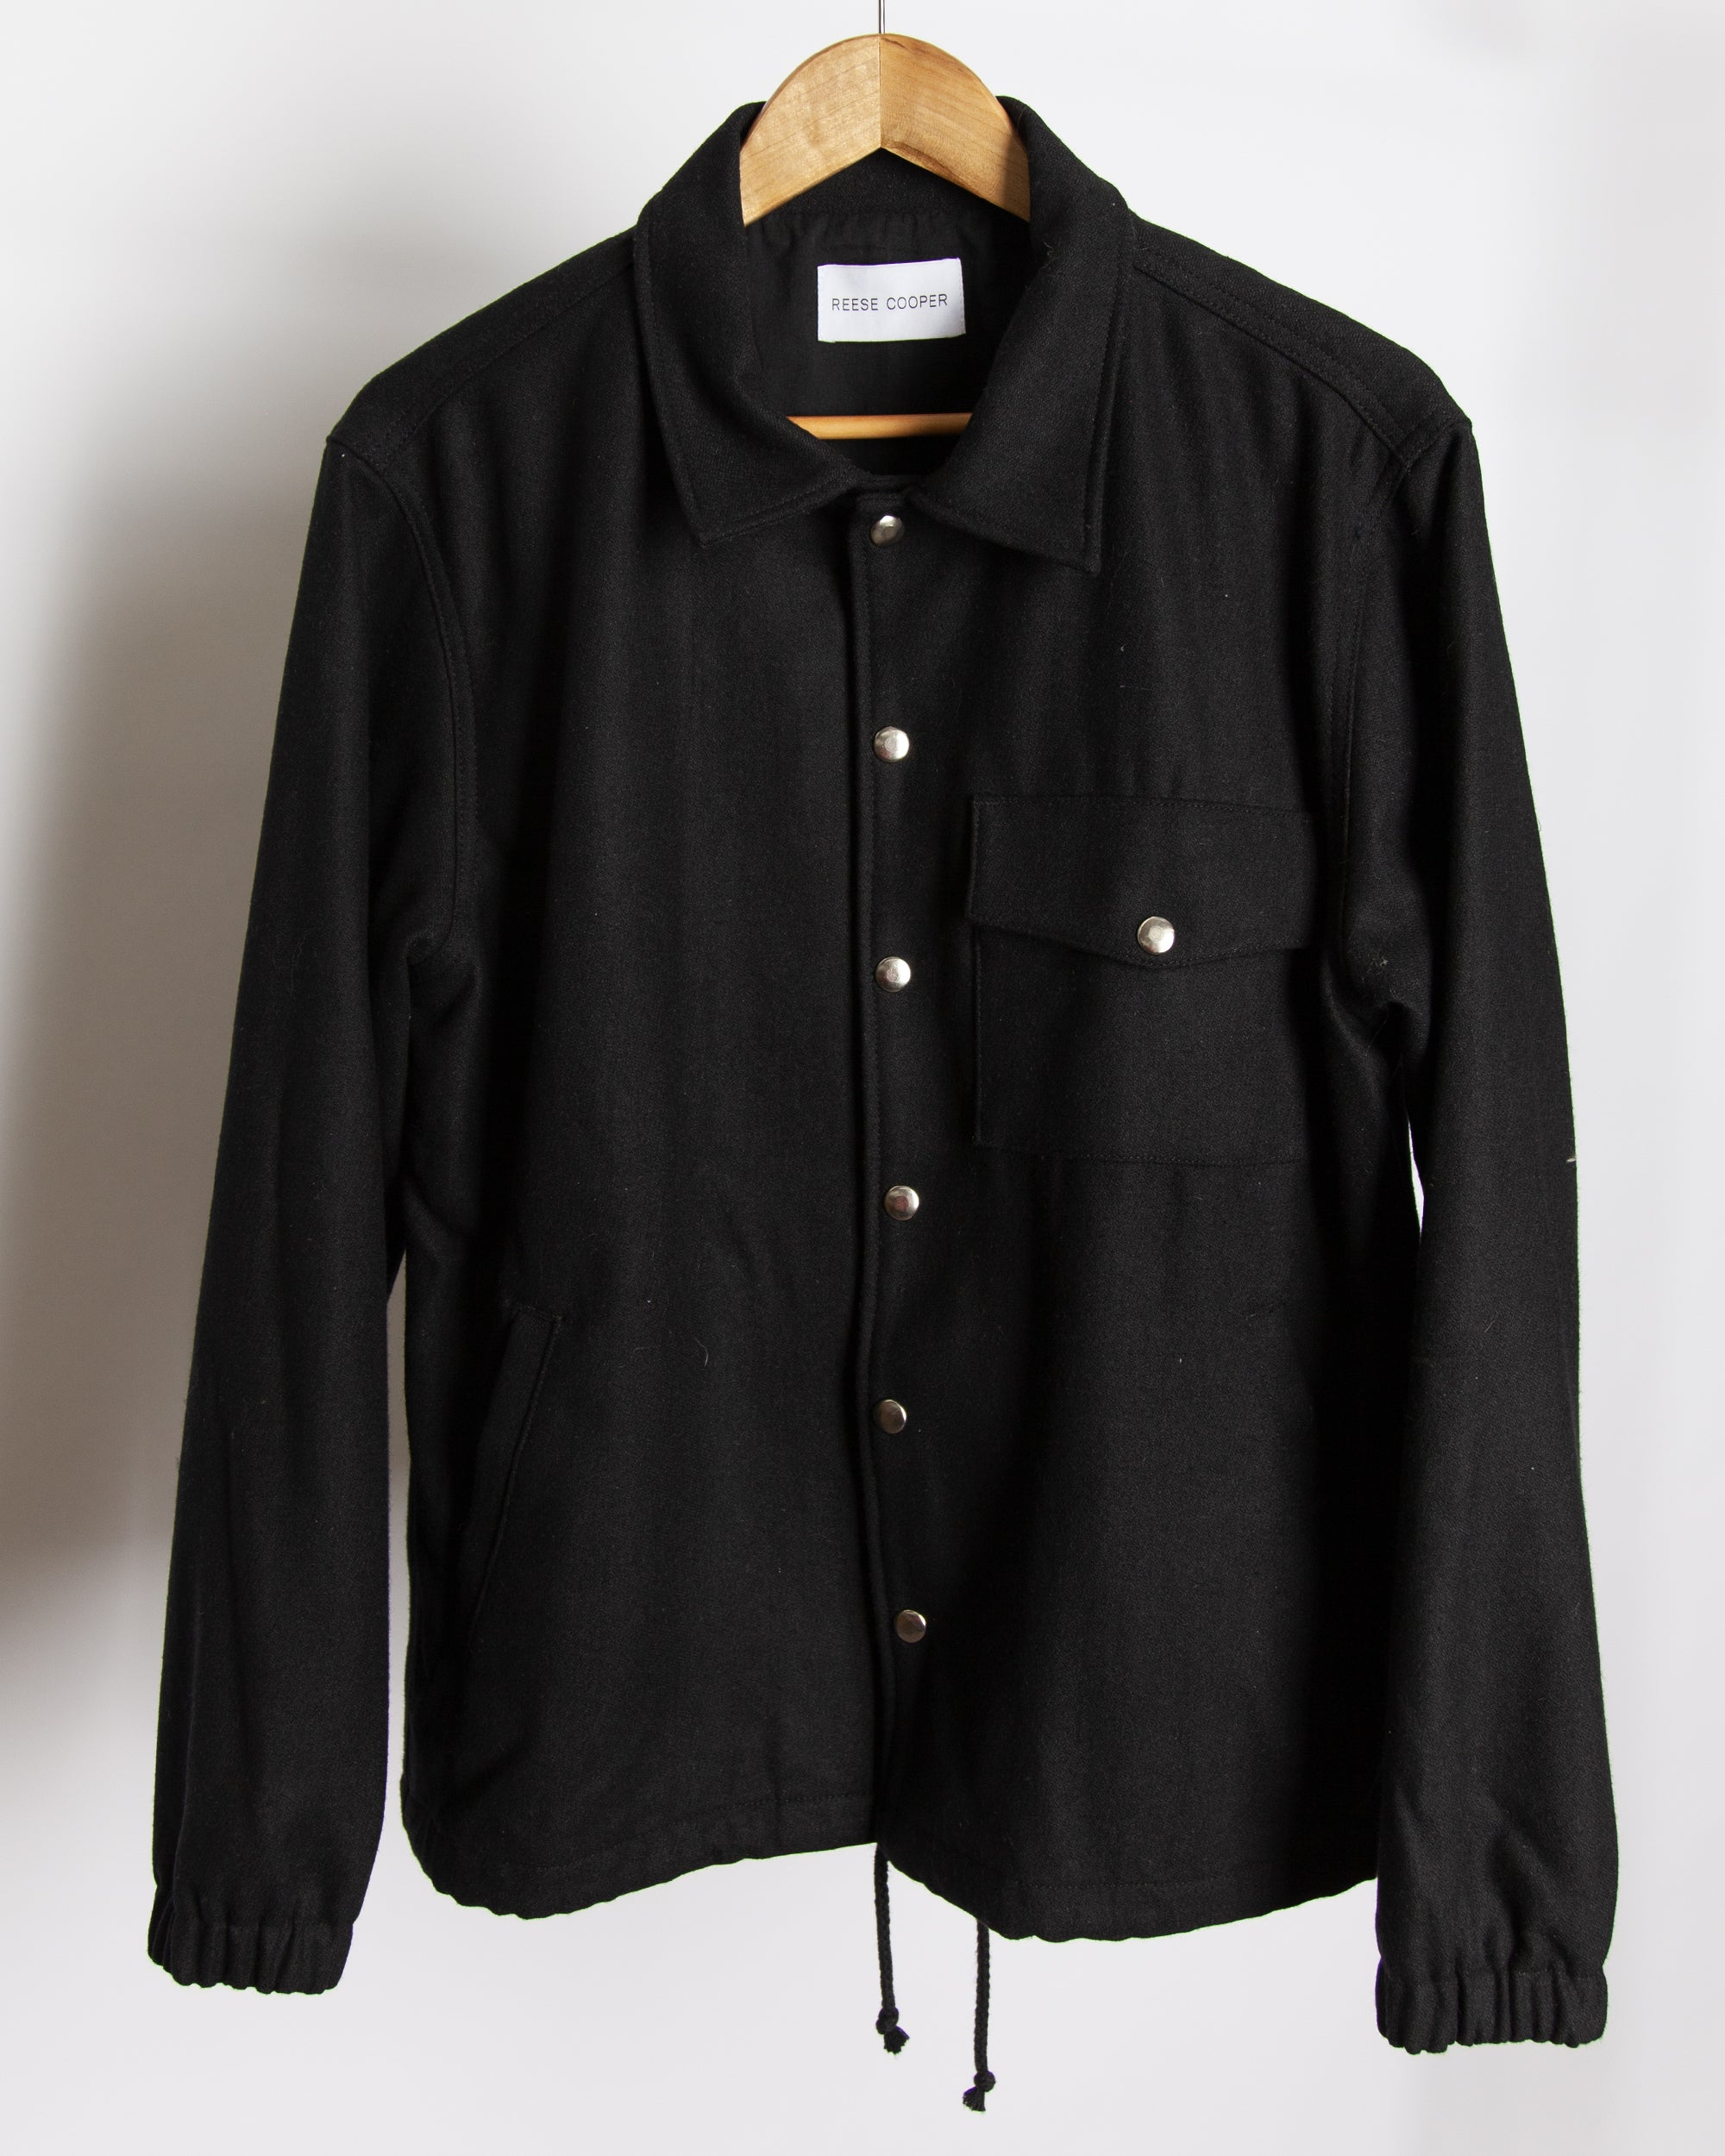 Spoiled Children - Wool Coaches Jacket in Black